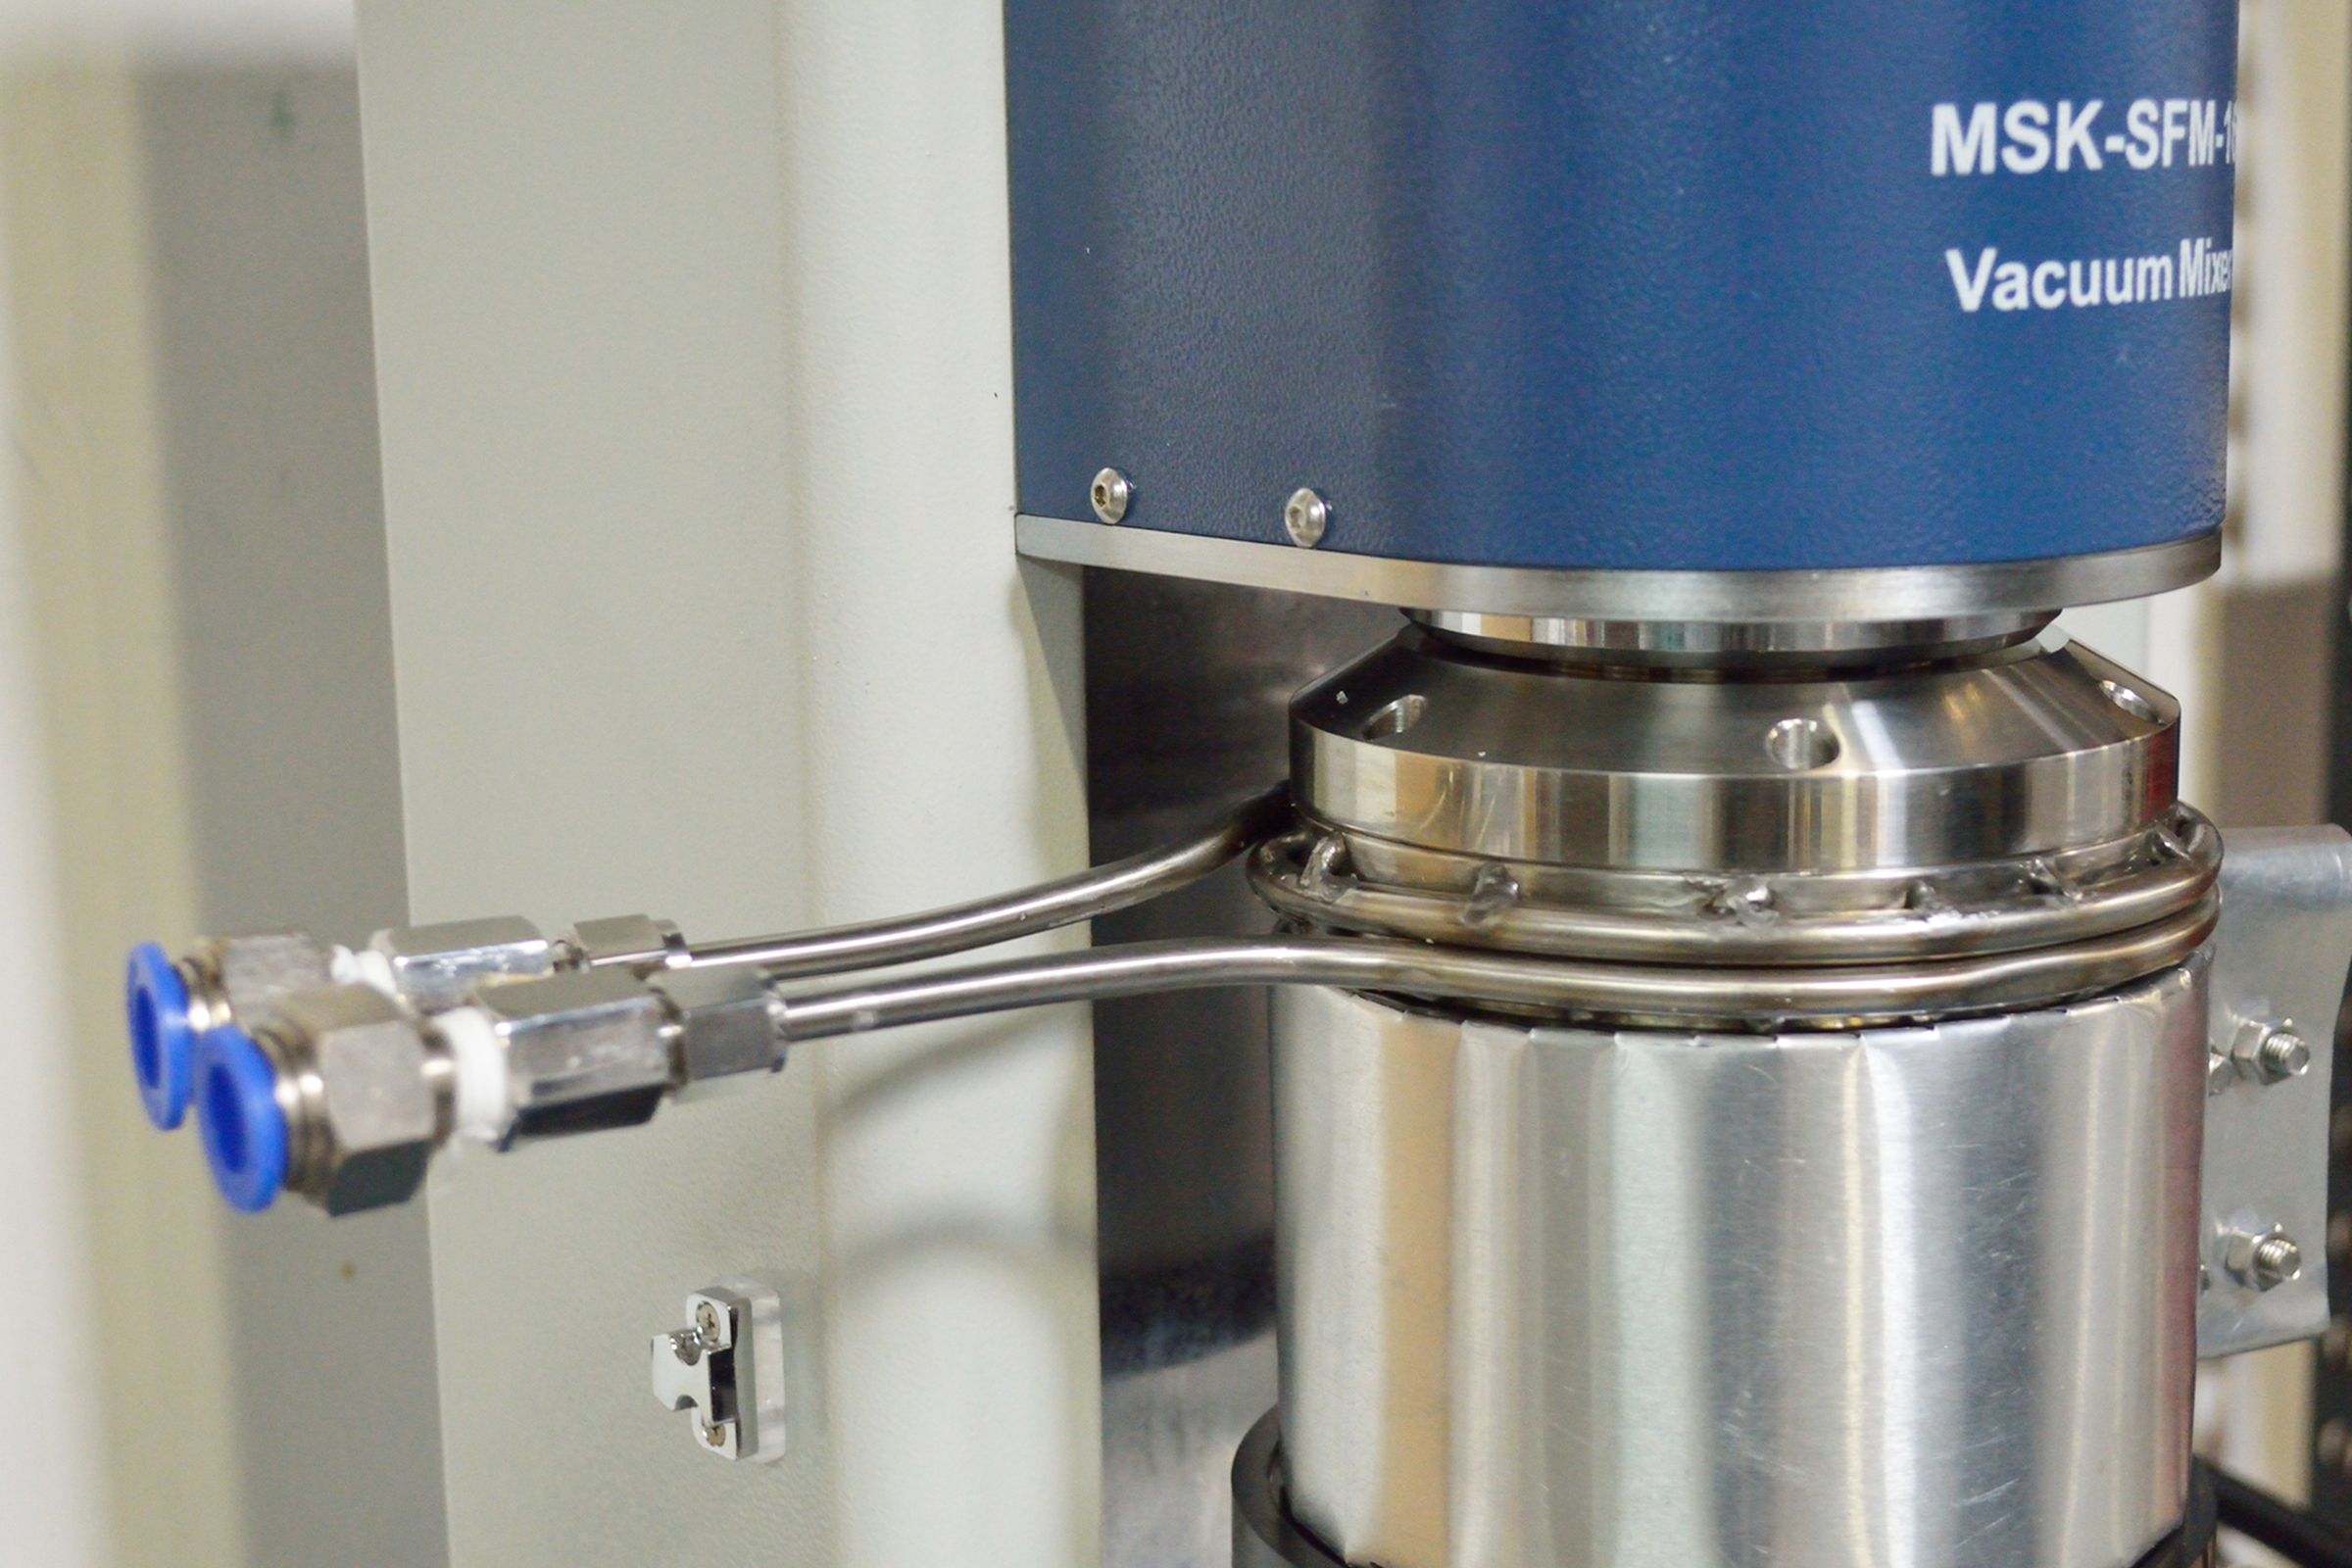 Compact Dual-Shaft Planetary Vacuum Mixer with a 150 mL